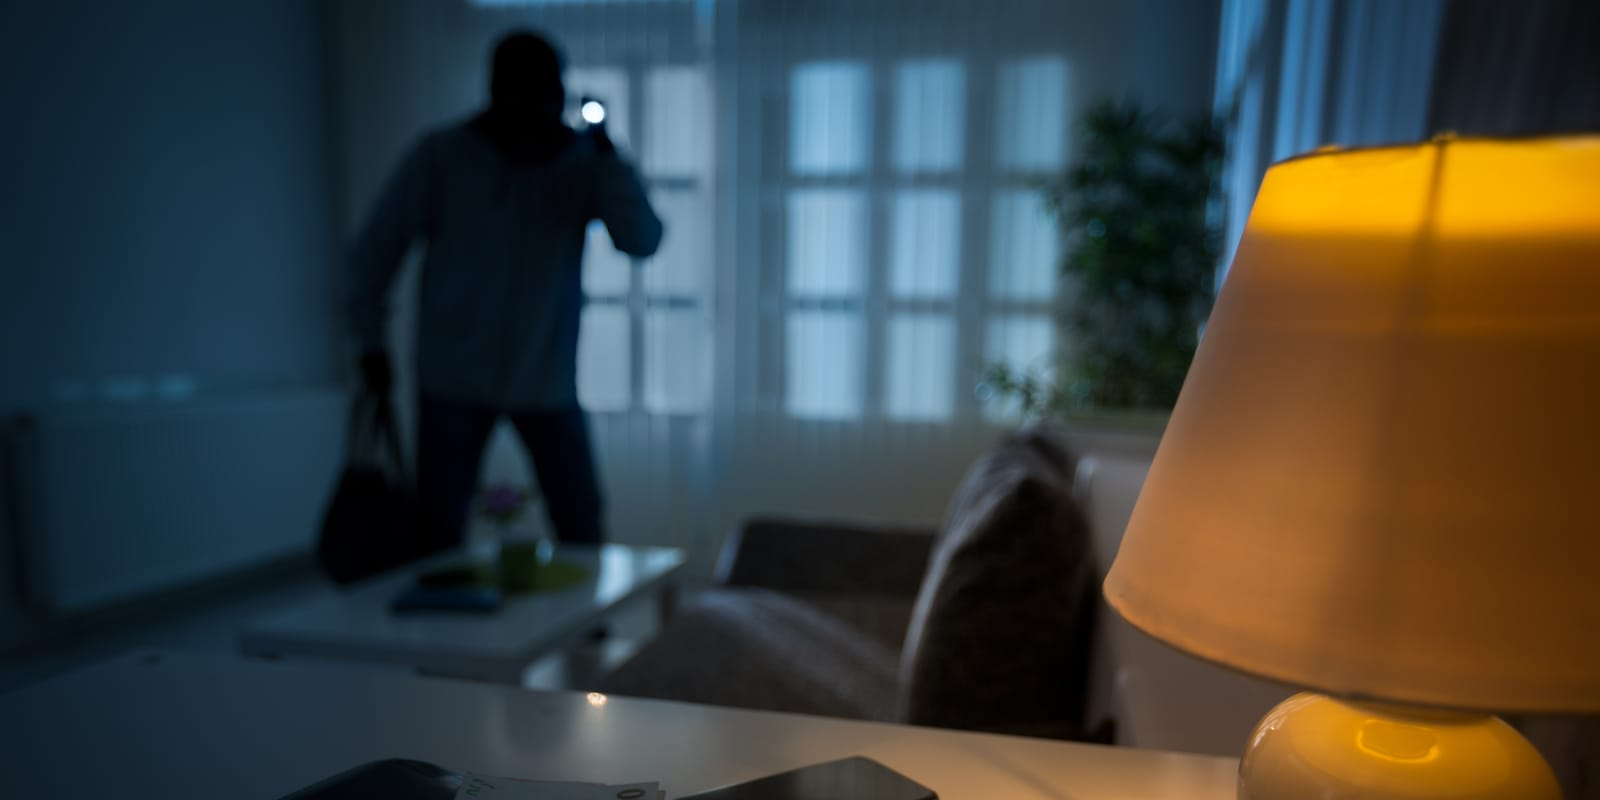 SimpliSafe wants to help keep this guy out of your house.